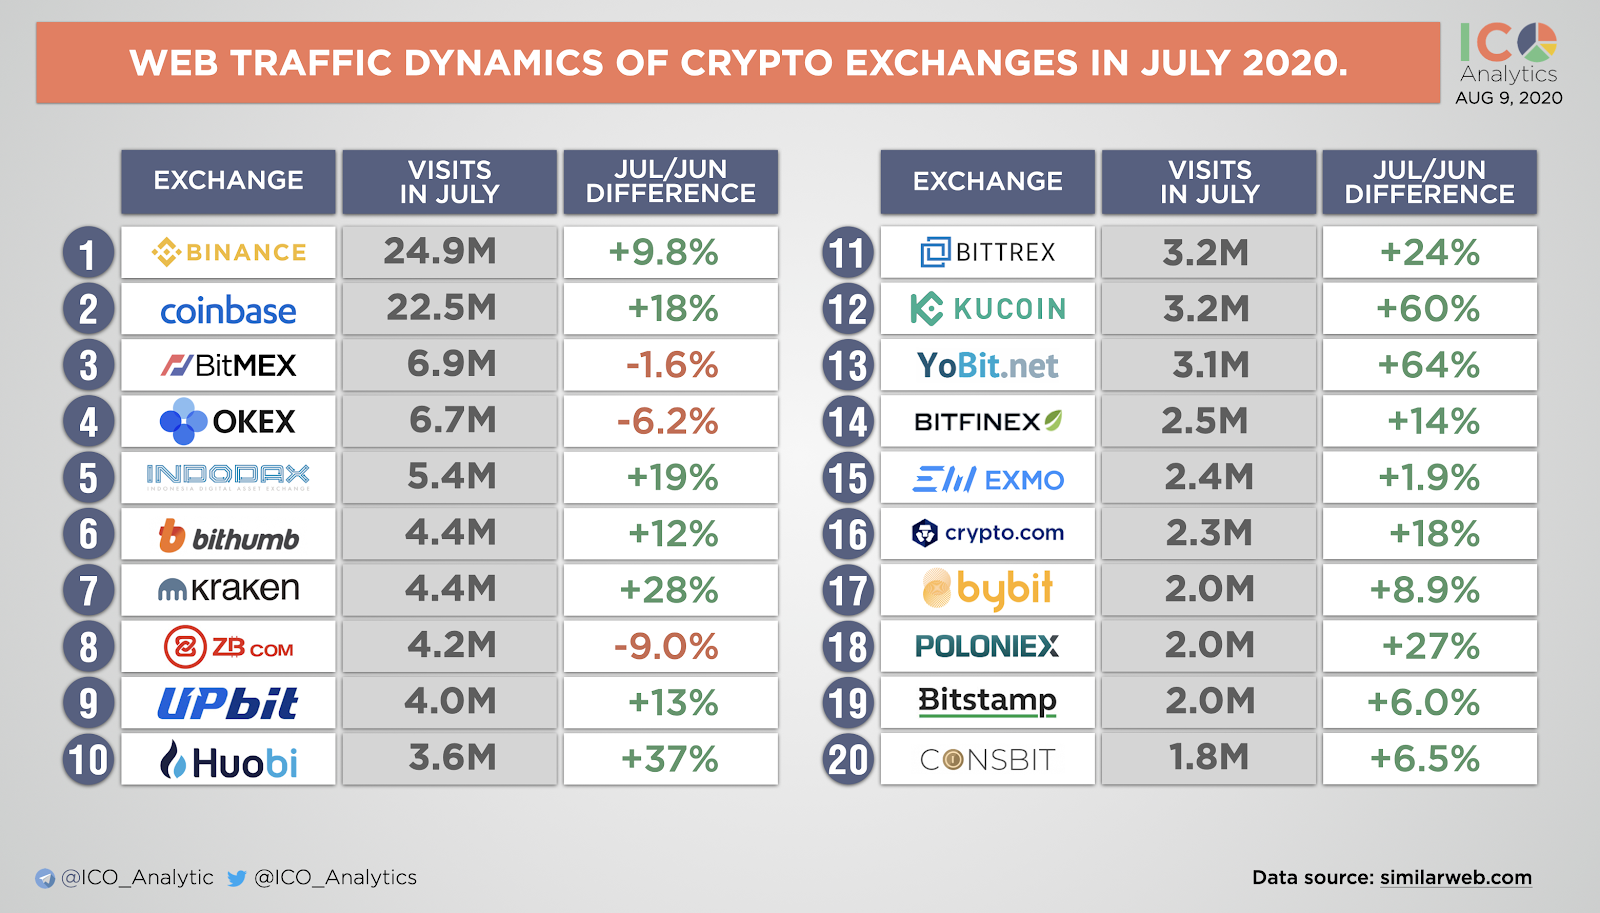 Web traffic dynamics of crypto exchanges in July 2020